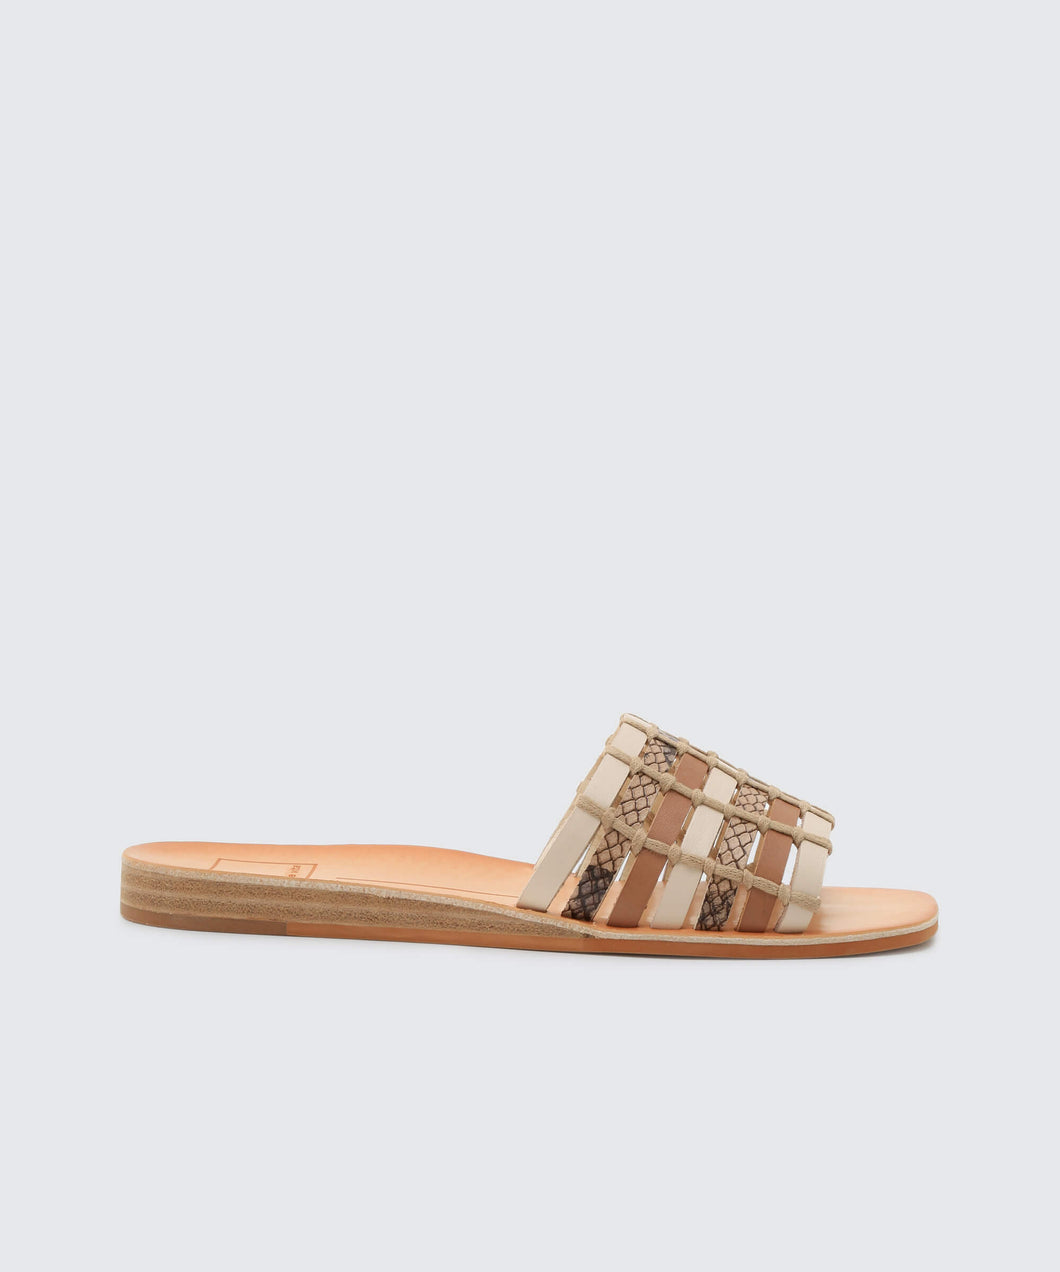 COLSEN SANDALS IN NATURAL MULTI -   Dolce Vita